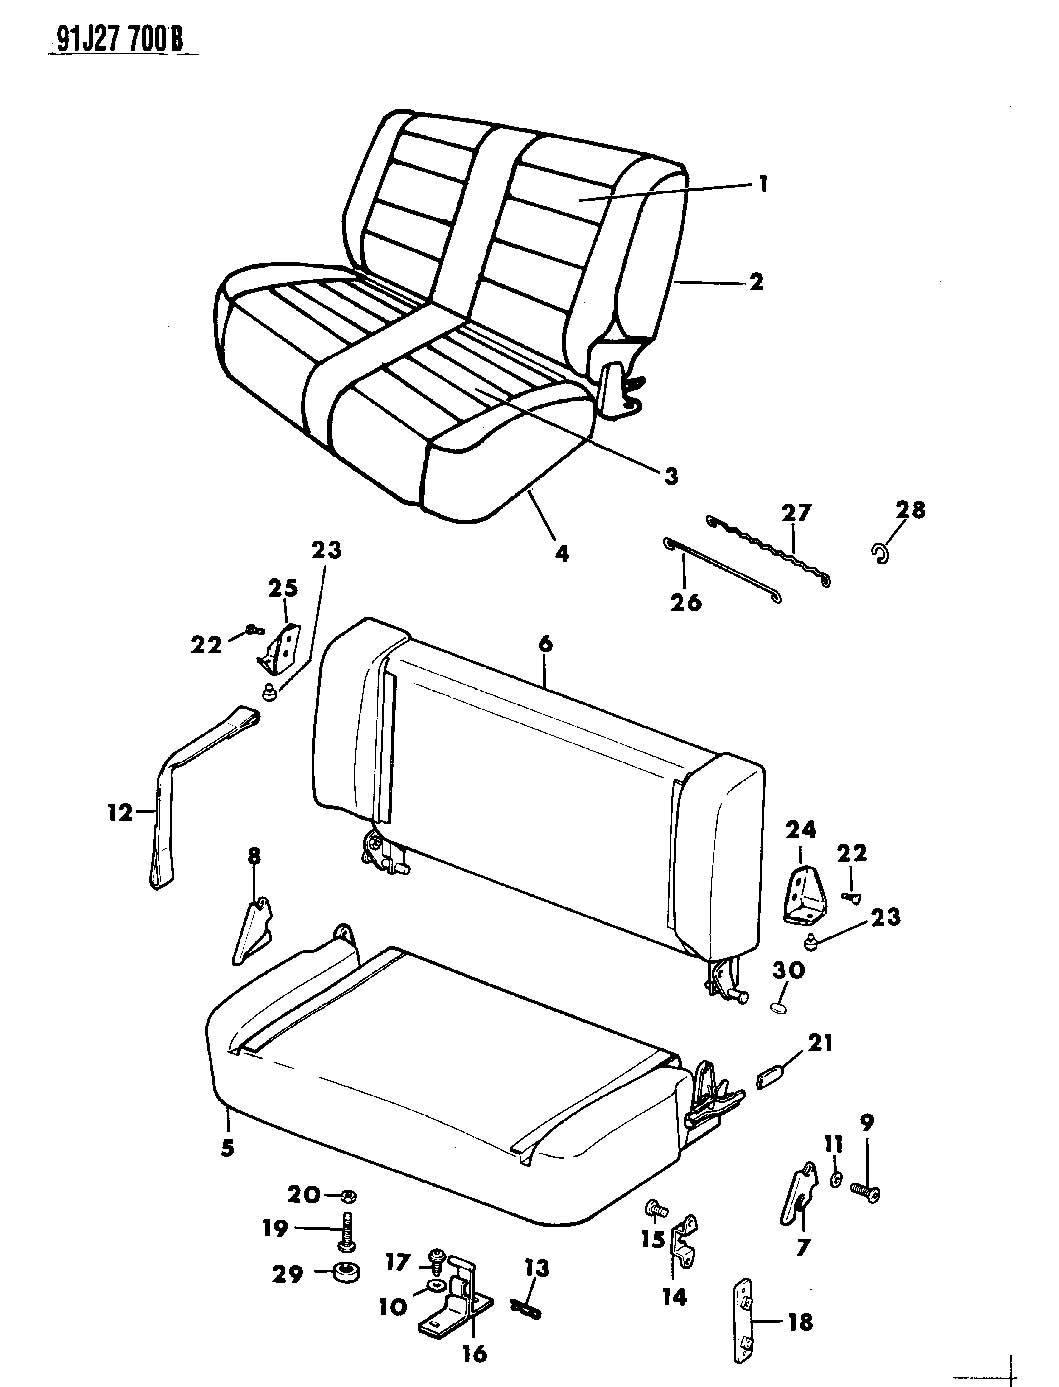 Seat Assemblies And Seat Covers Rear Seat Wrangler Yj